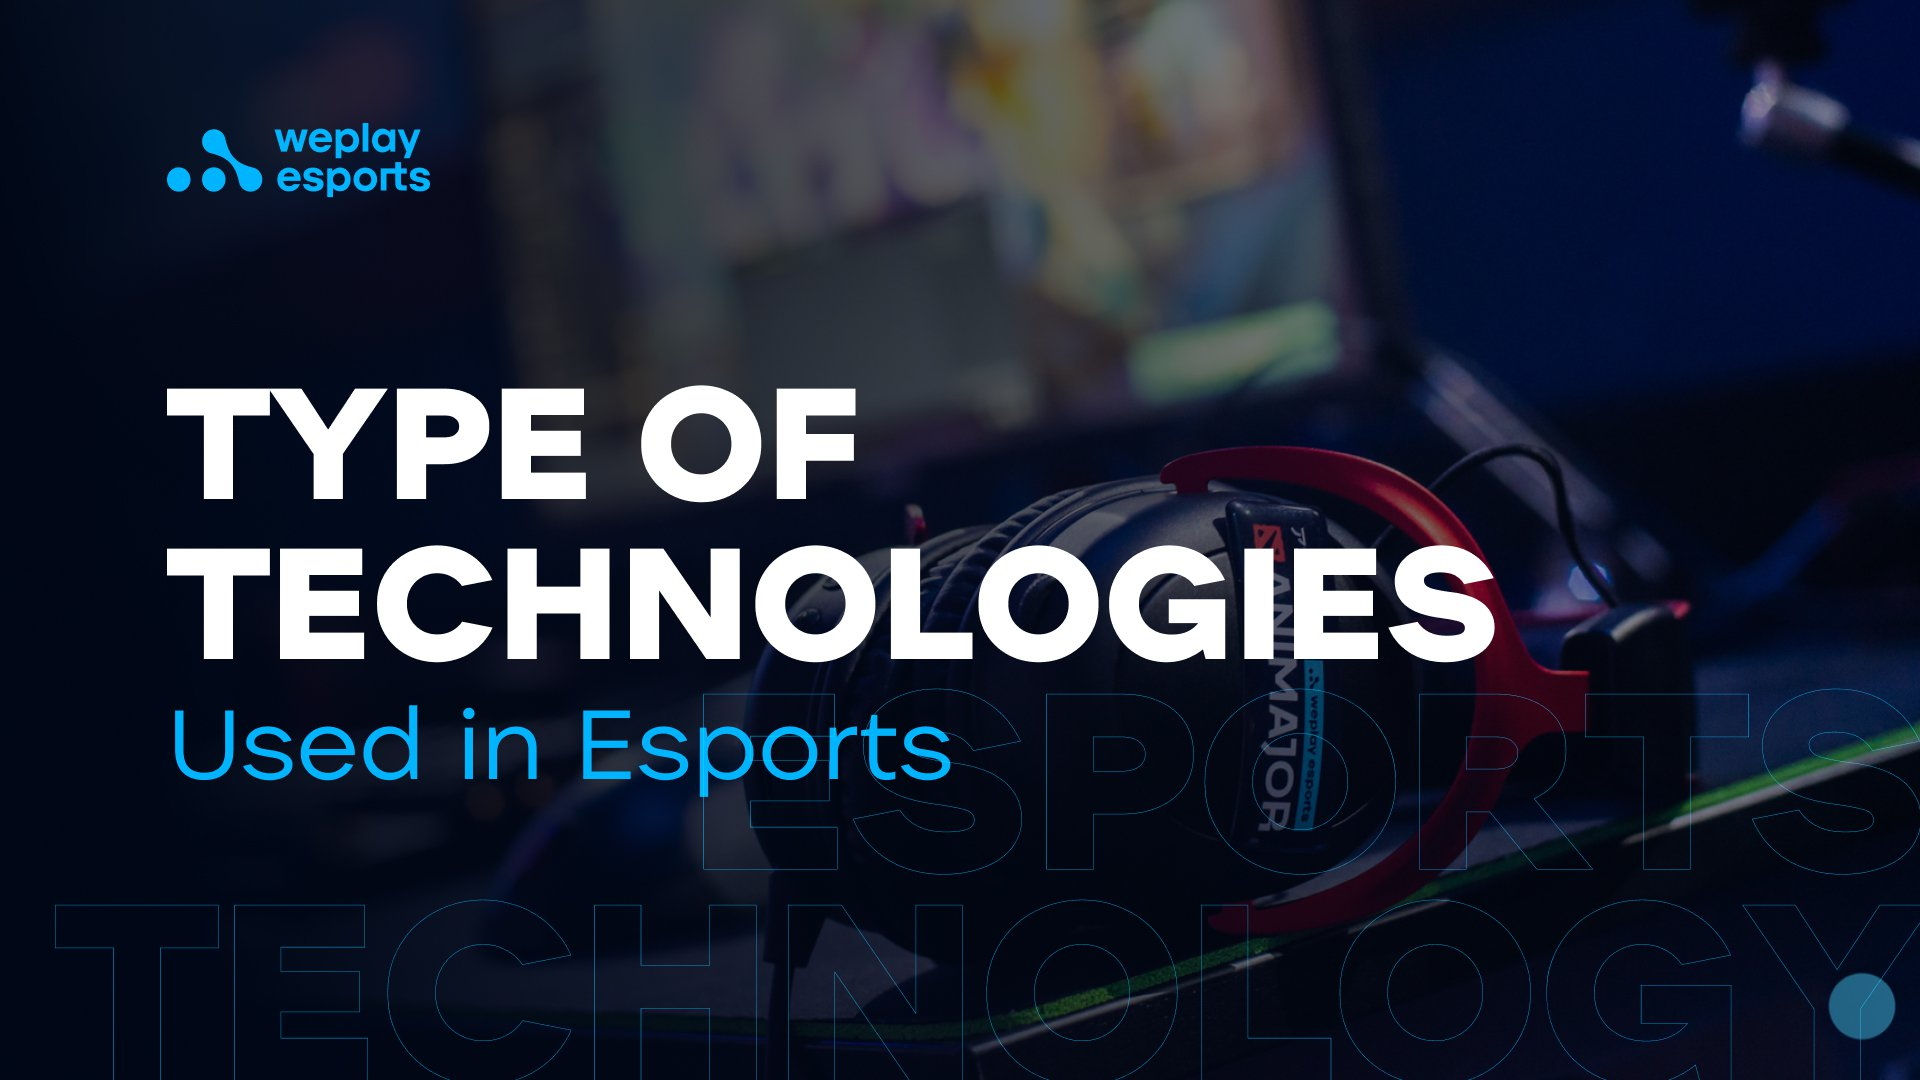 Type of Technologies Used in Esports